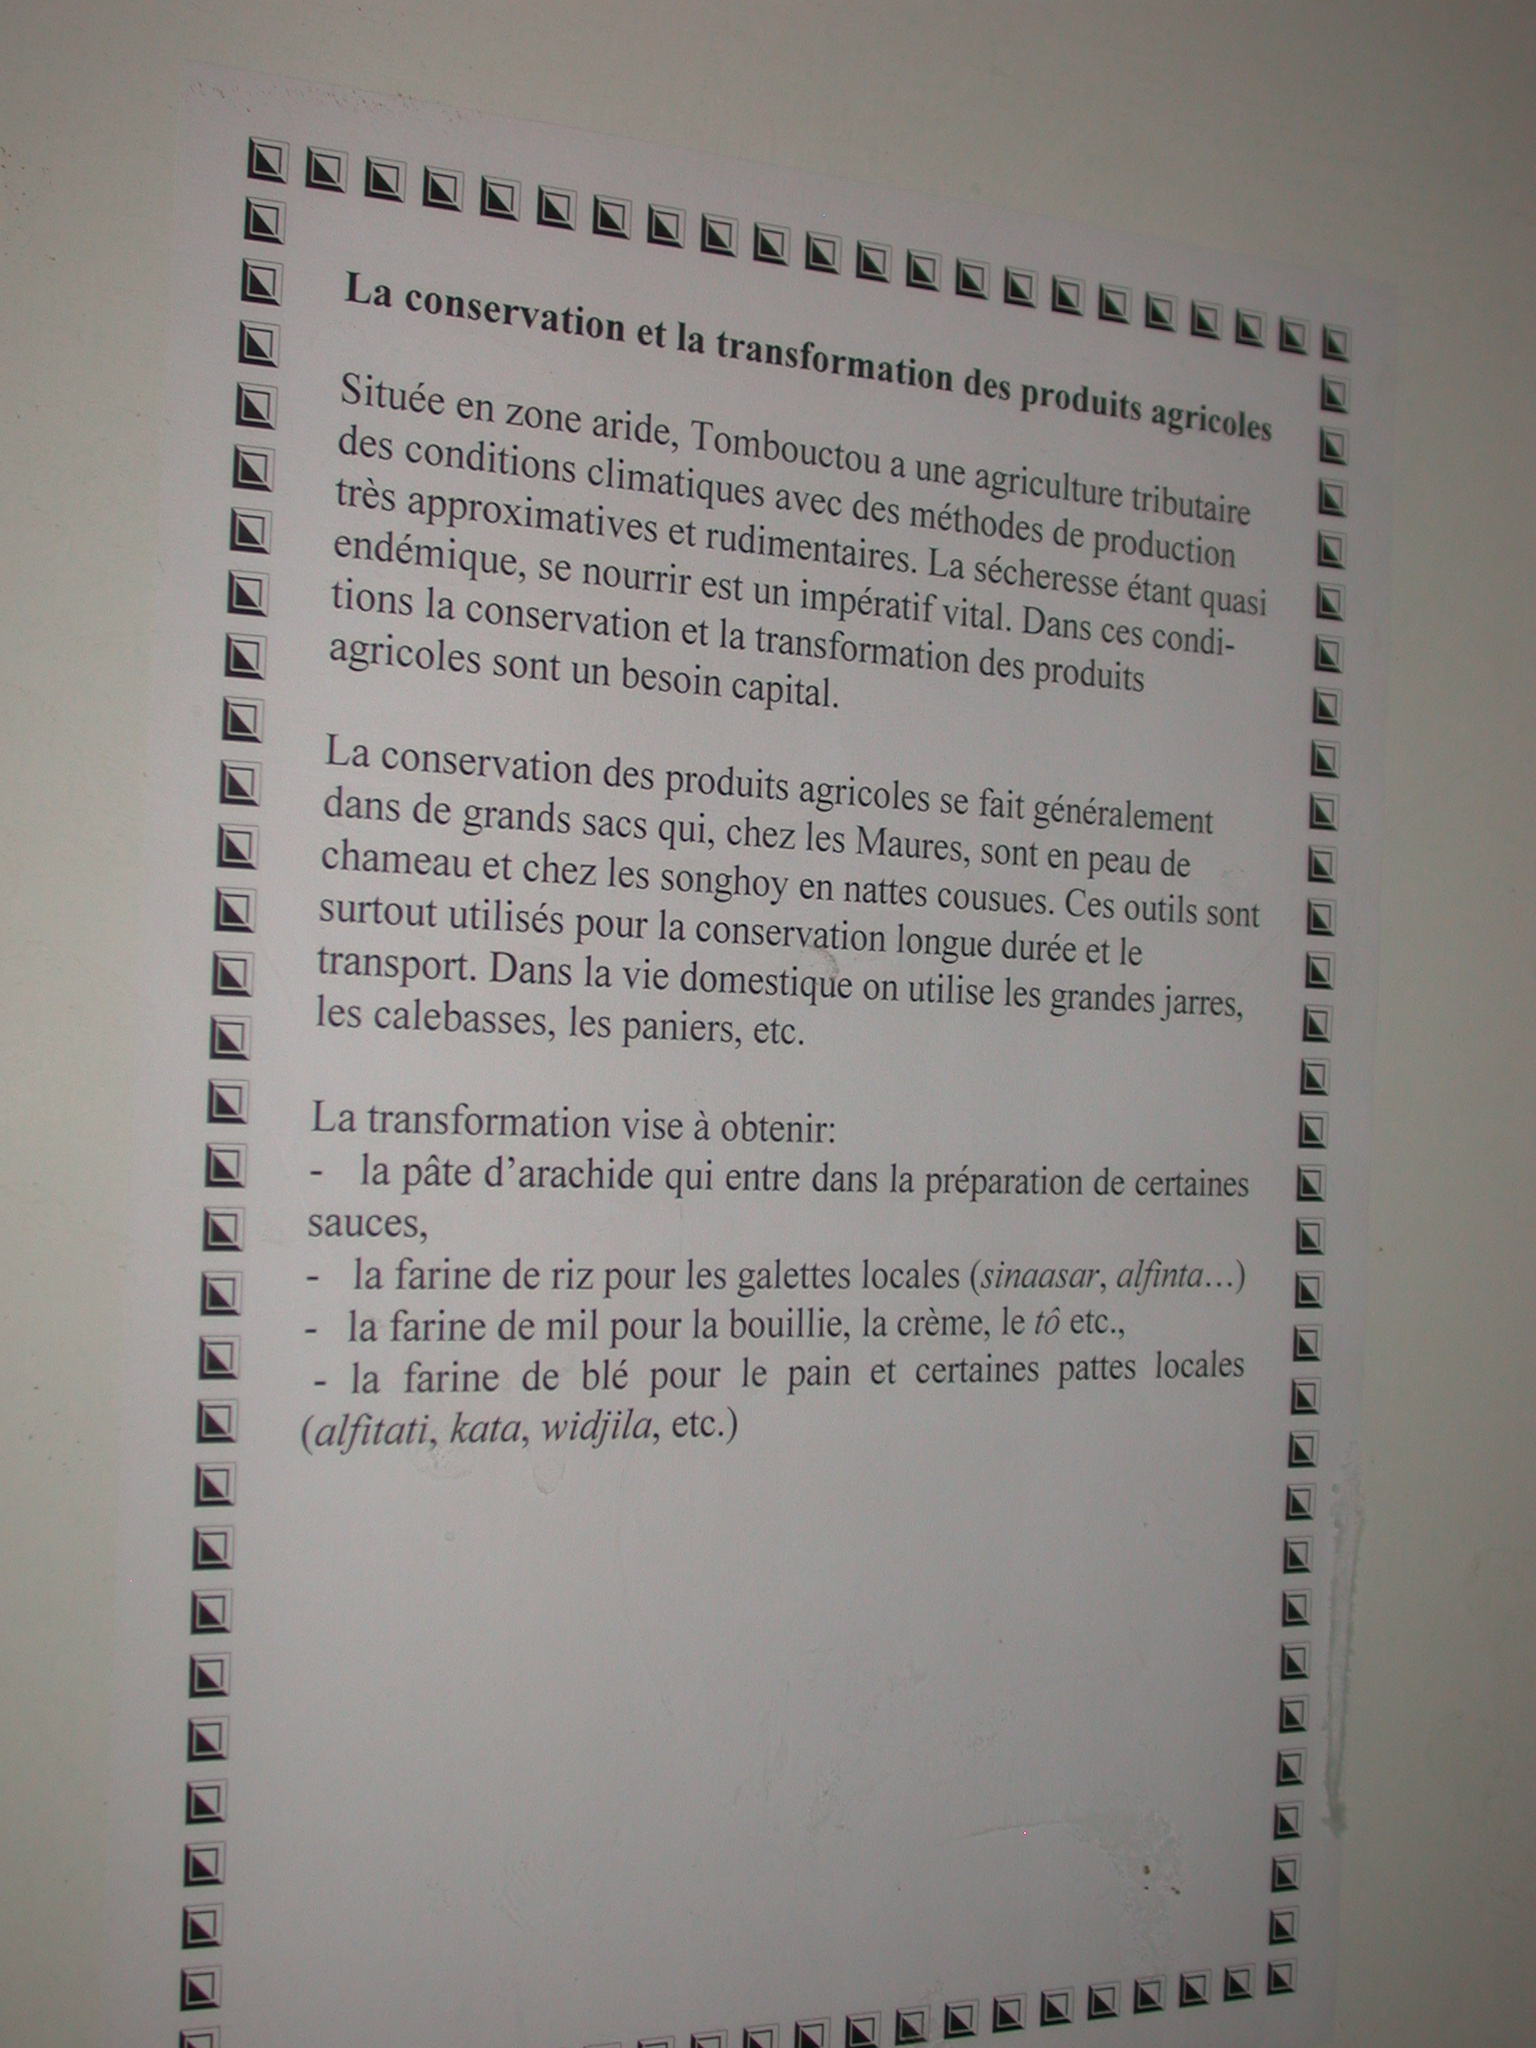 Description of Storage and Transformation of Agricultural Products, Timbuktu Ethnological Museum, Timbuktu, Mali